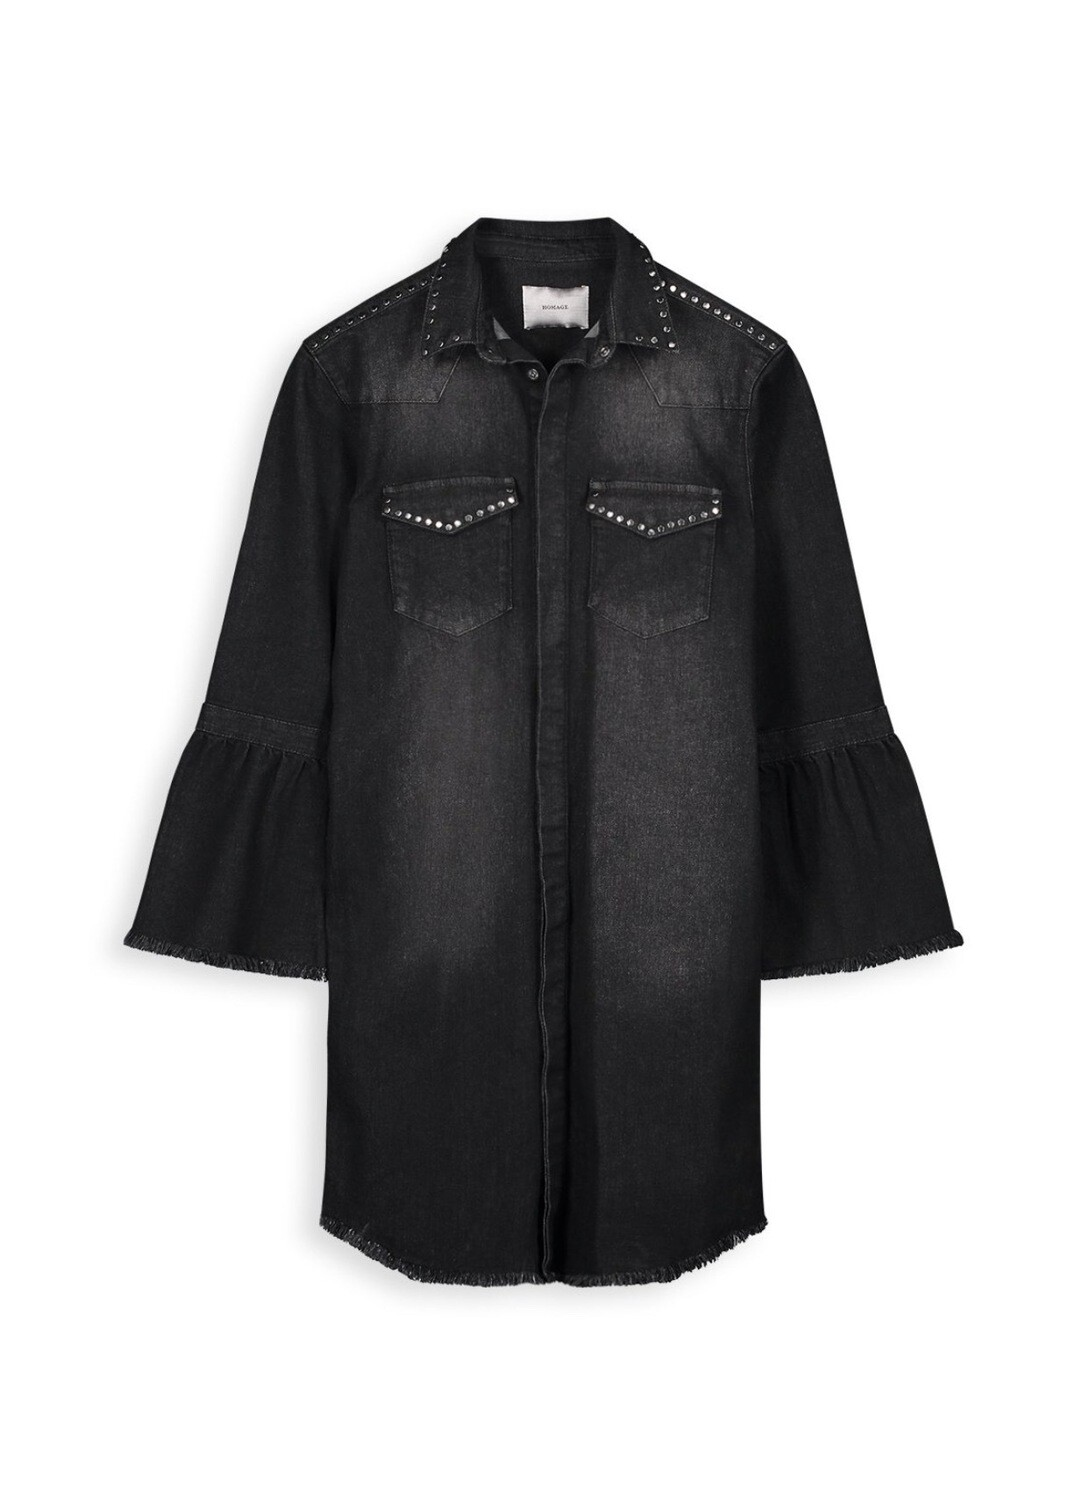 Homage Studded Denim Coat With Trumpet Sleeves | Cosmos Black